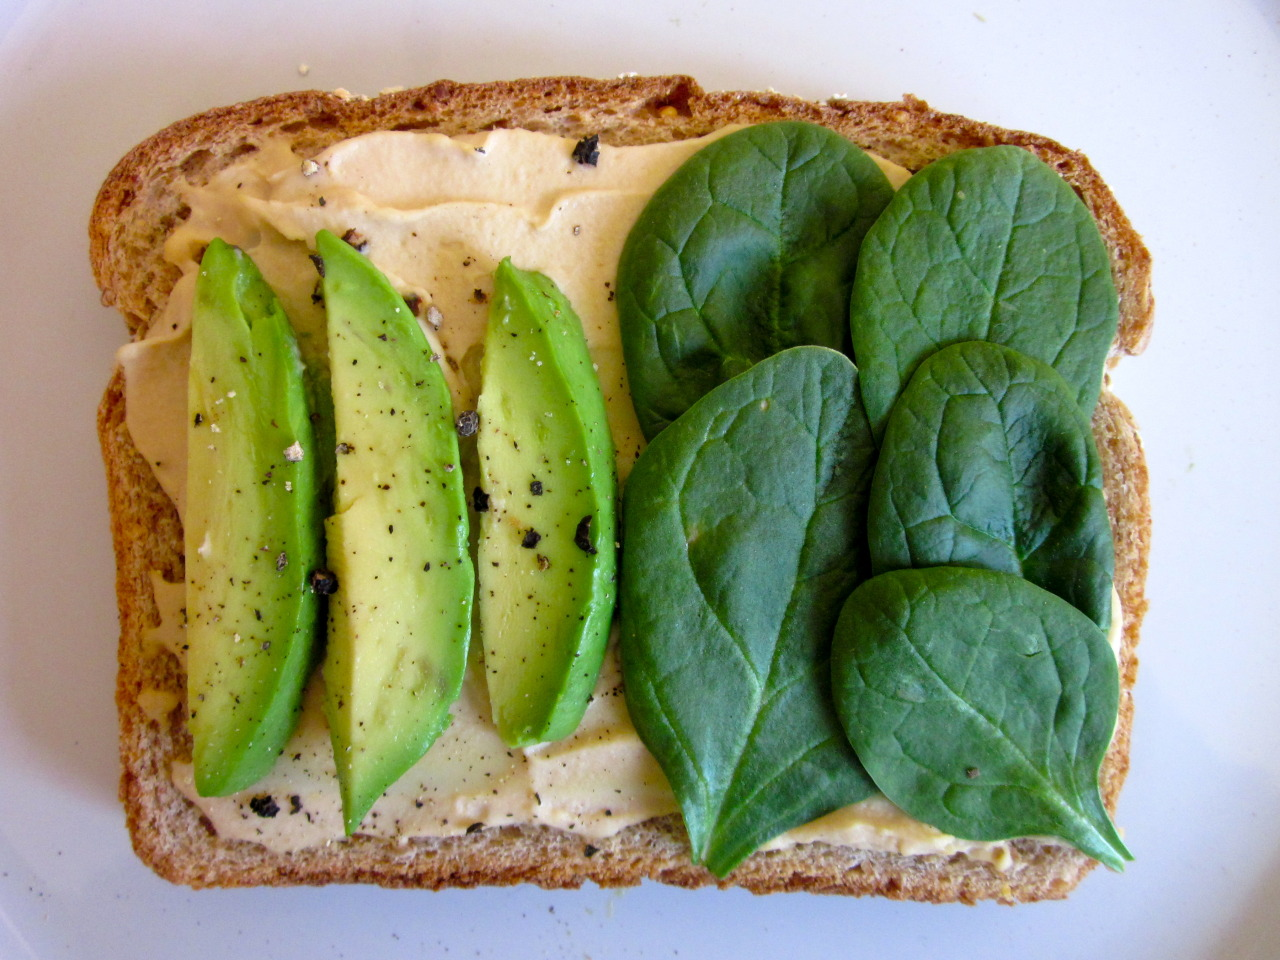 Toast with hummus, spinach, avocado and cracked pepper